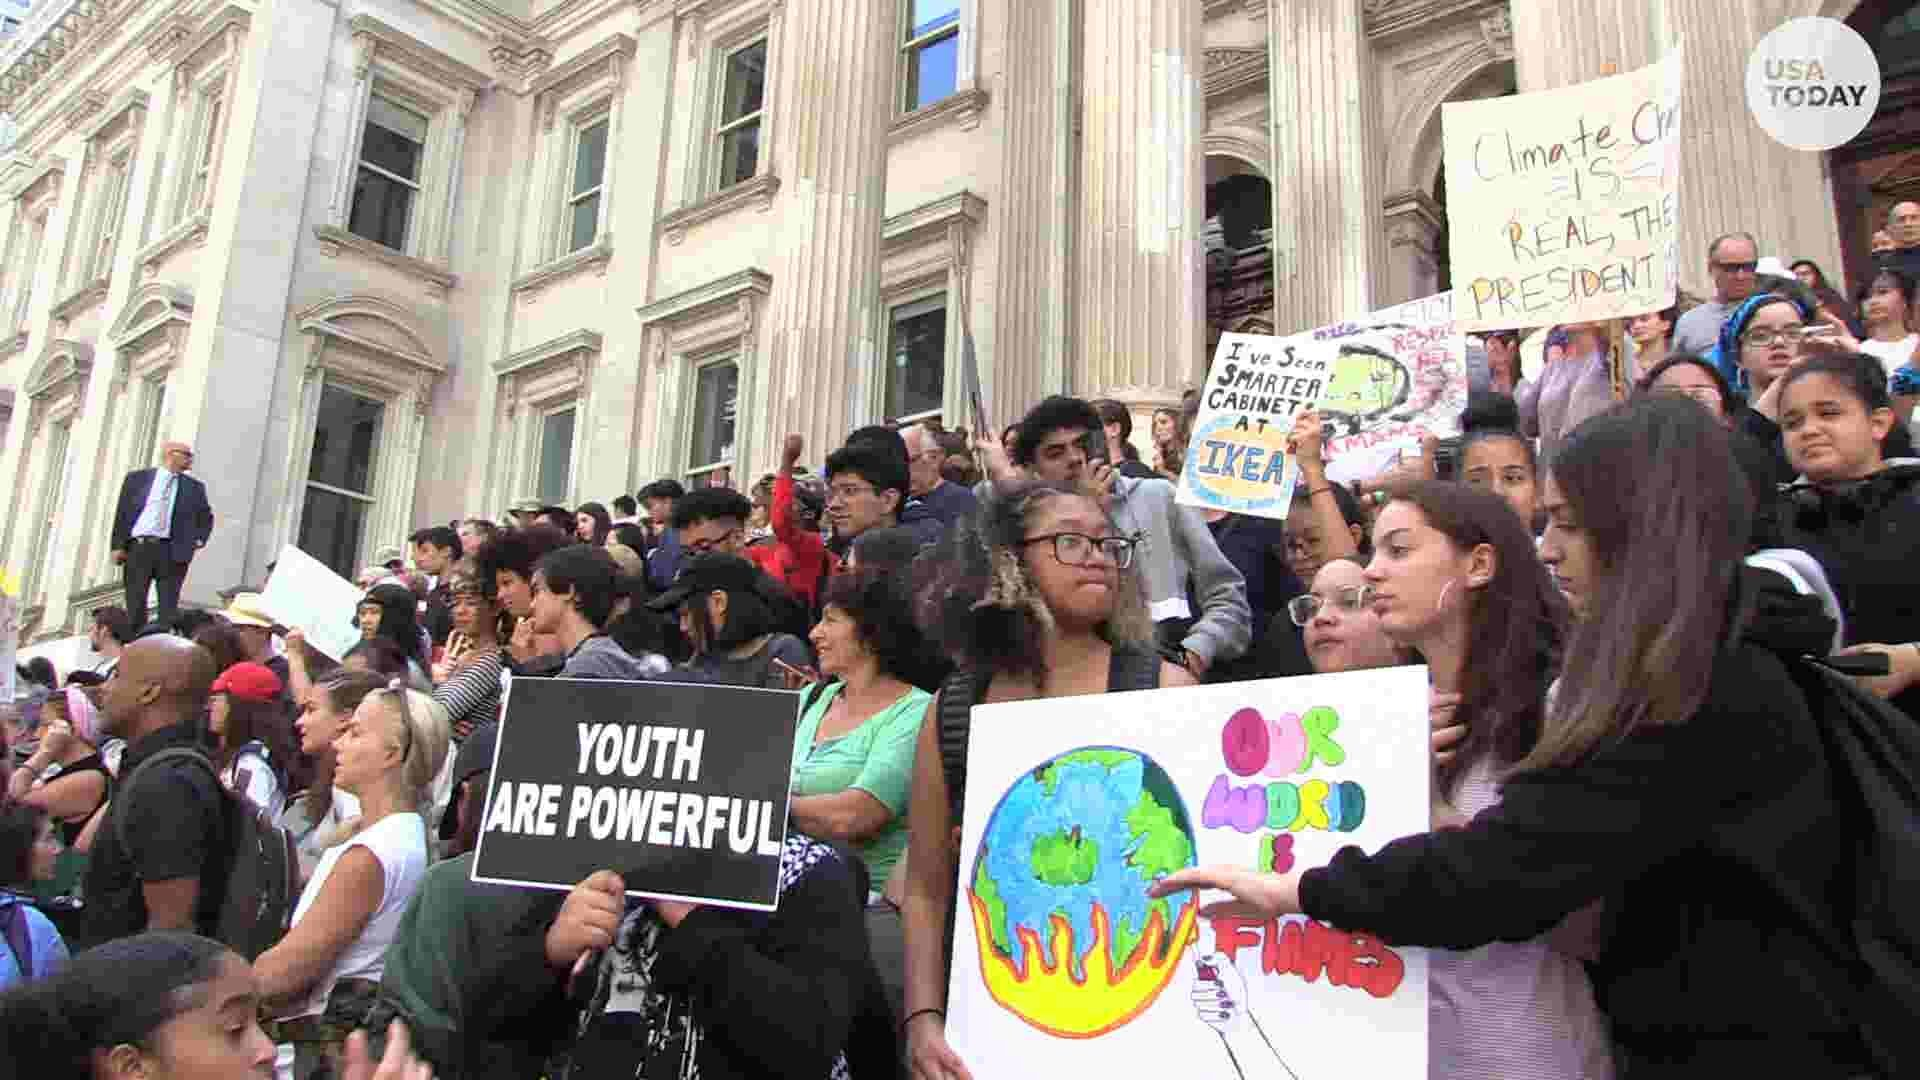 Students gathered at Foley Square, NYC to demand action against climate change. Sept. 20, 2019